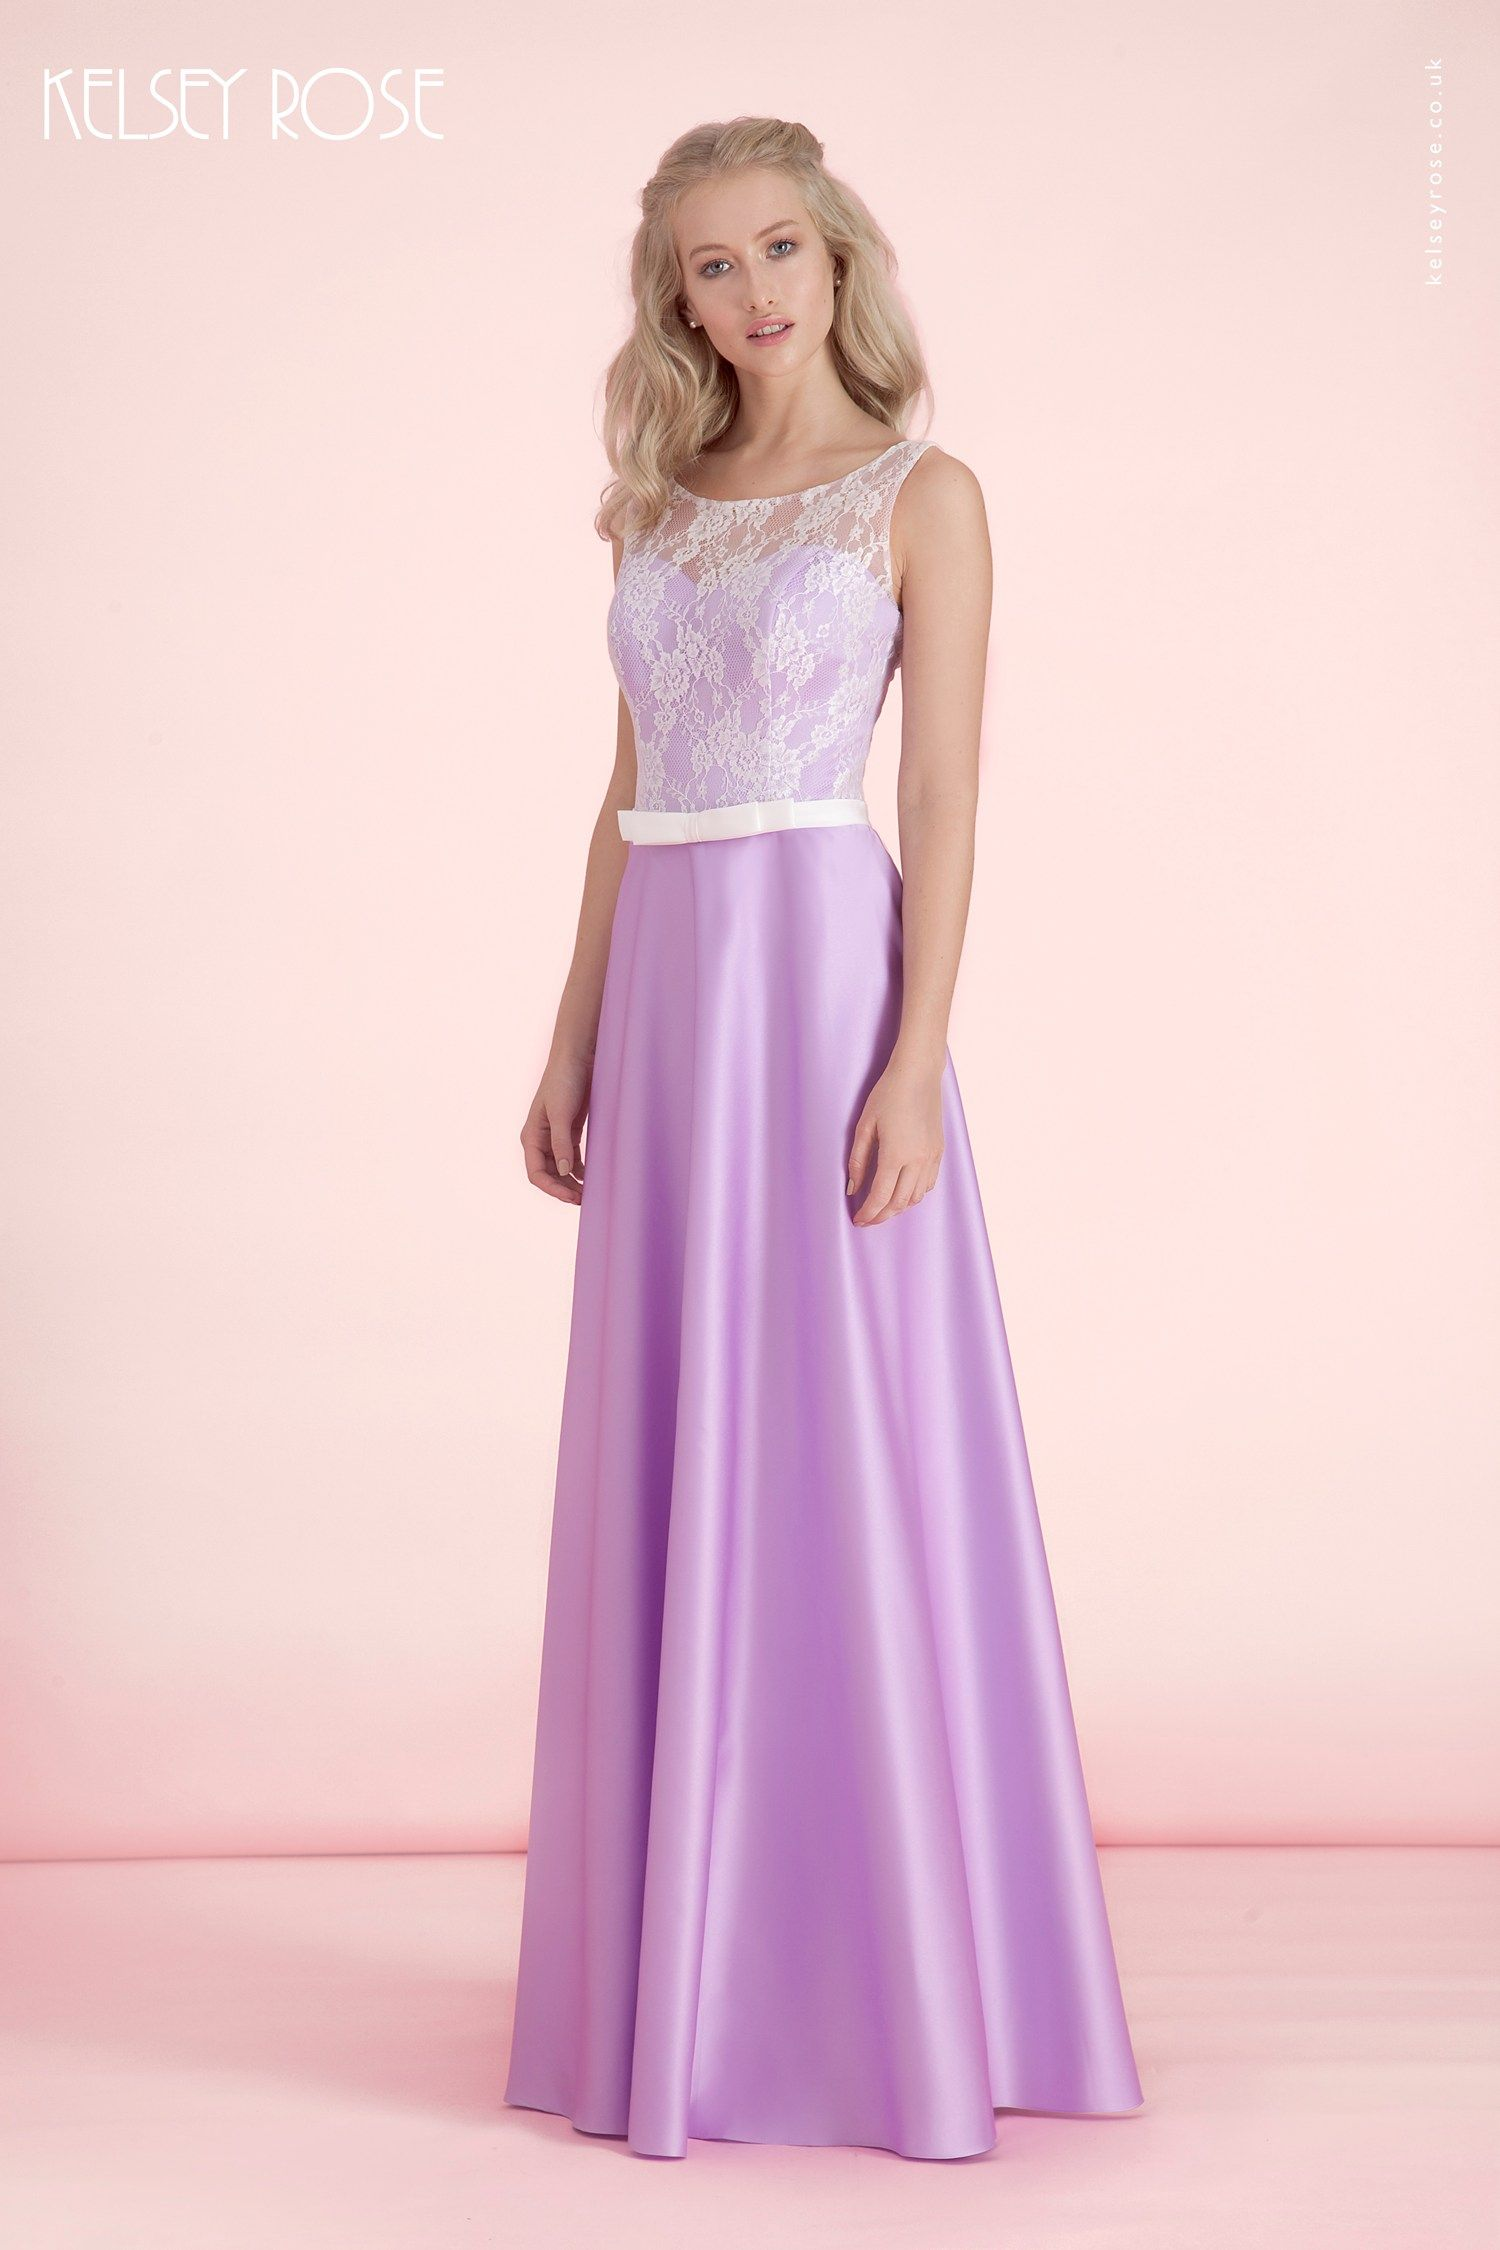 d210c05457077 Satin and Lace - Long - Bridesmaid Dresses - Not Another Boring Bridesmaid  Dress - NABBD